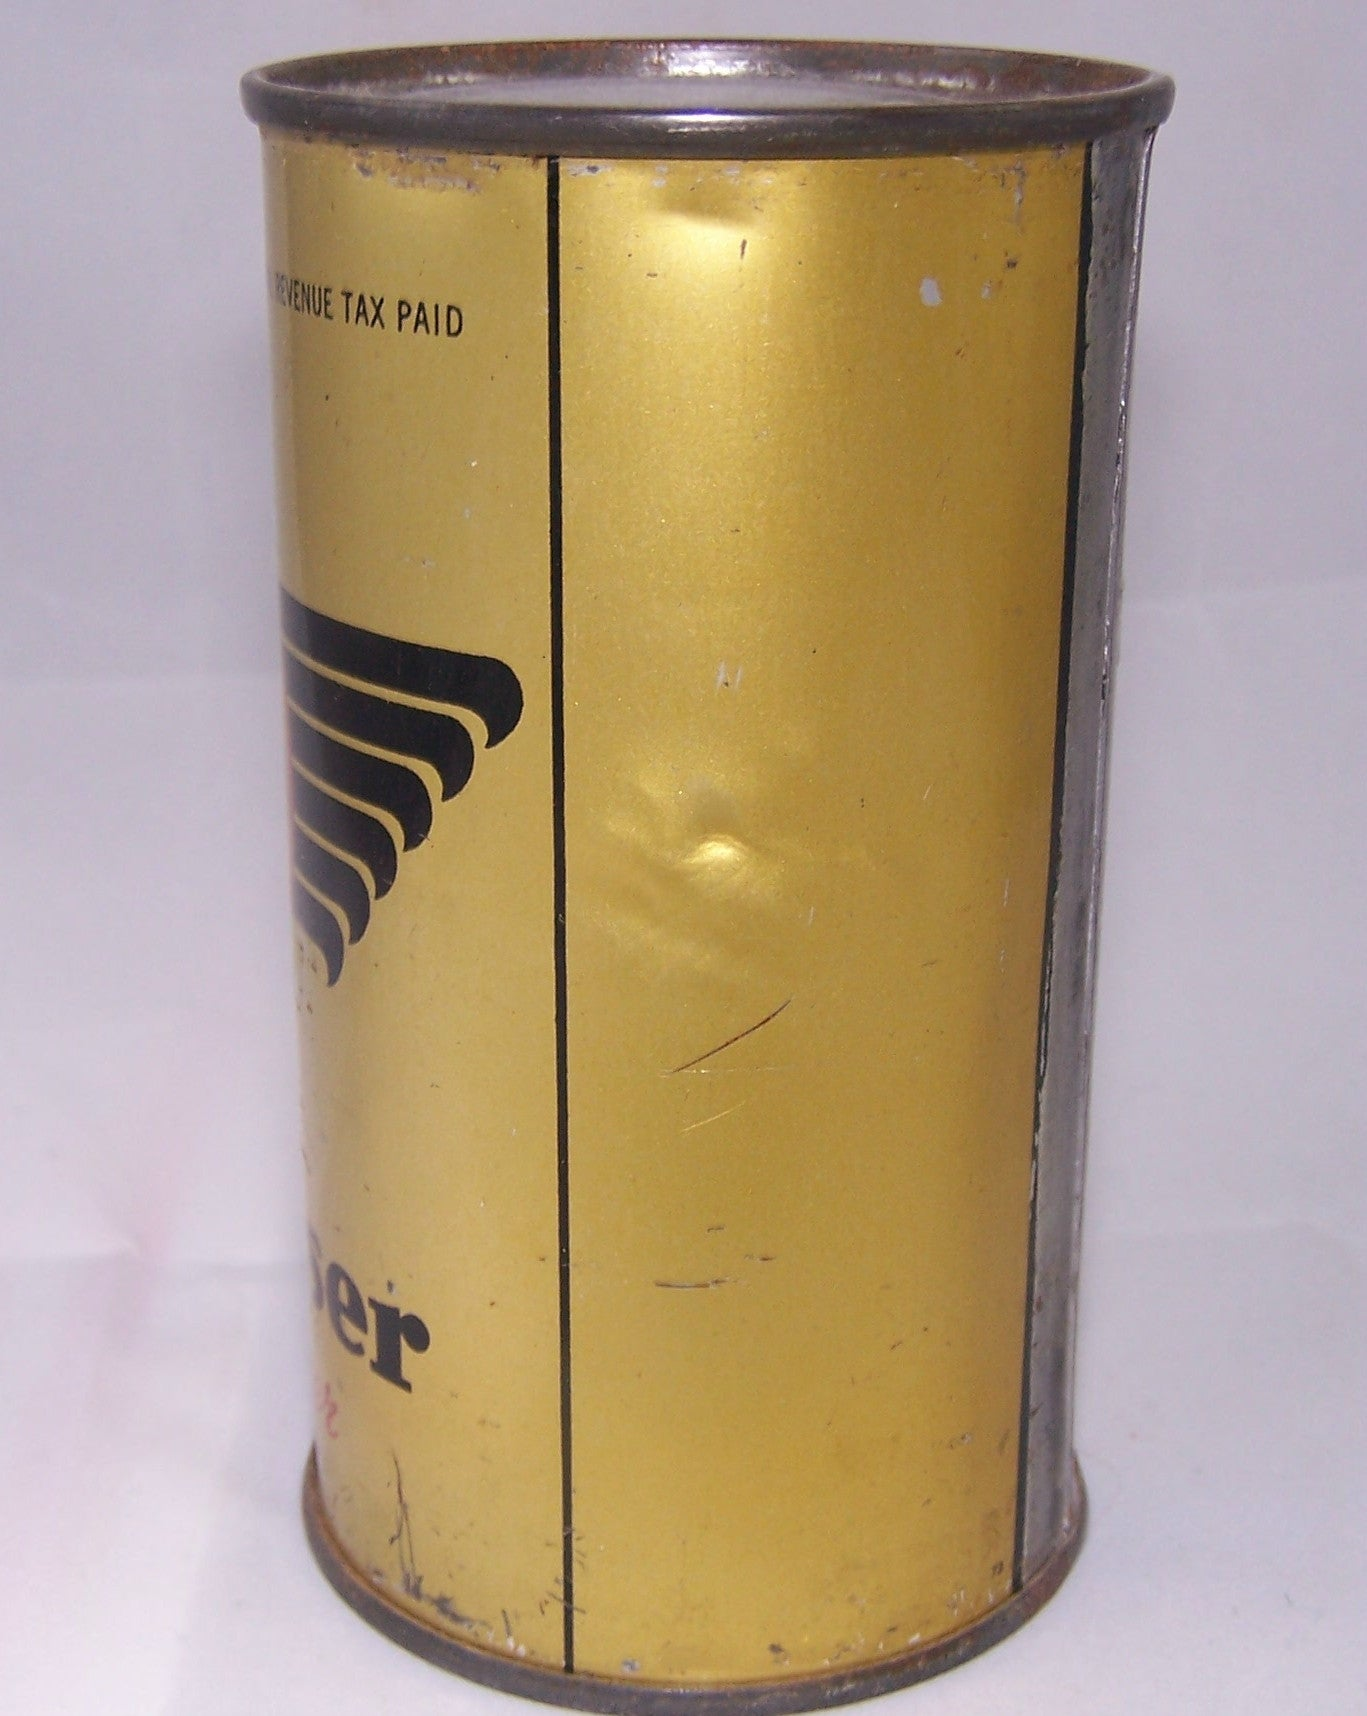 Budweiser Opening Instruction, USBC 43-40, Grade 1/1- Sold on 4/1/15